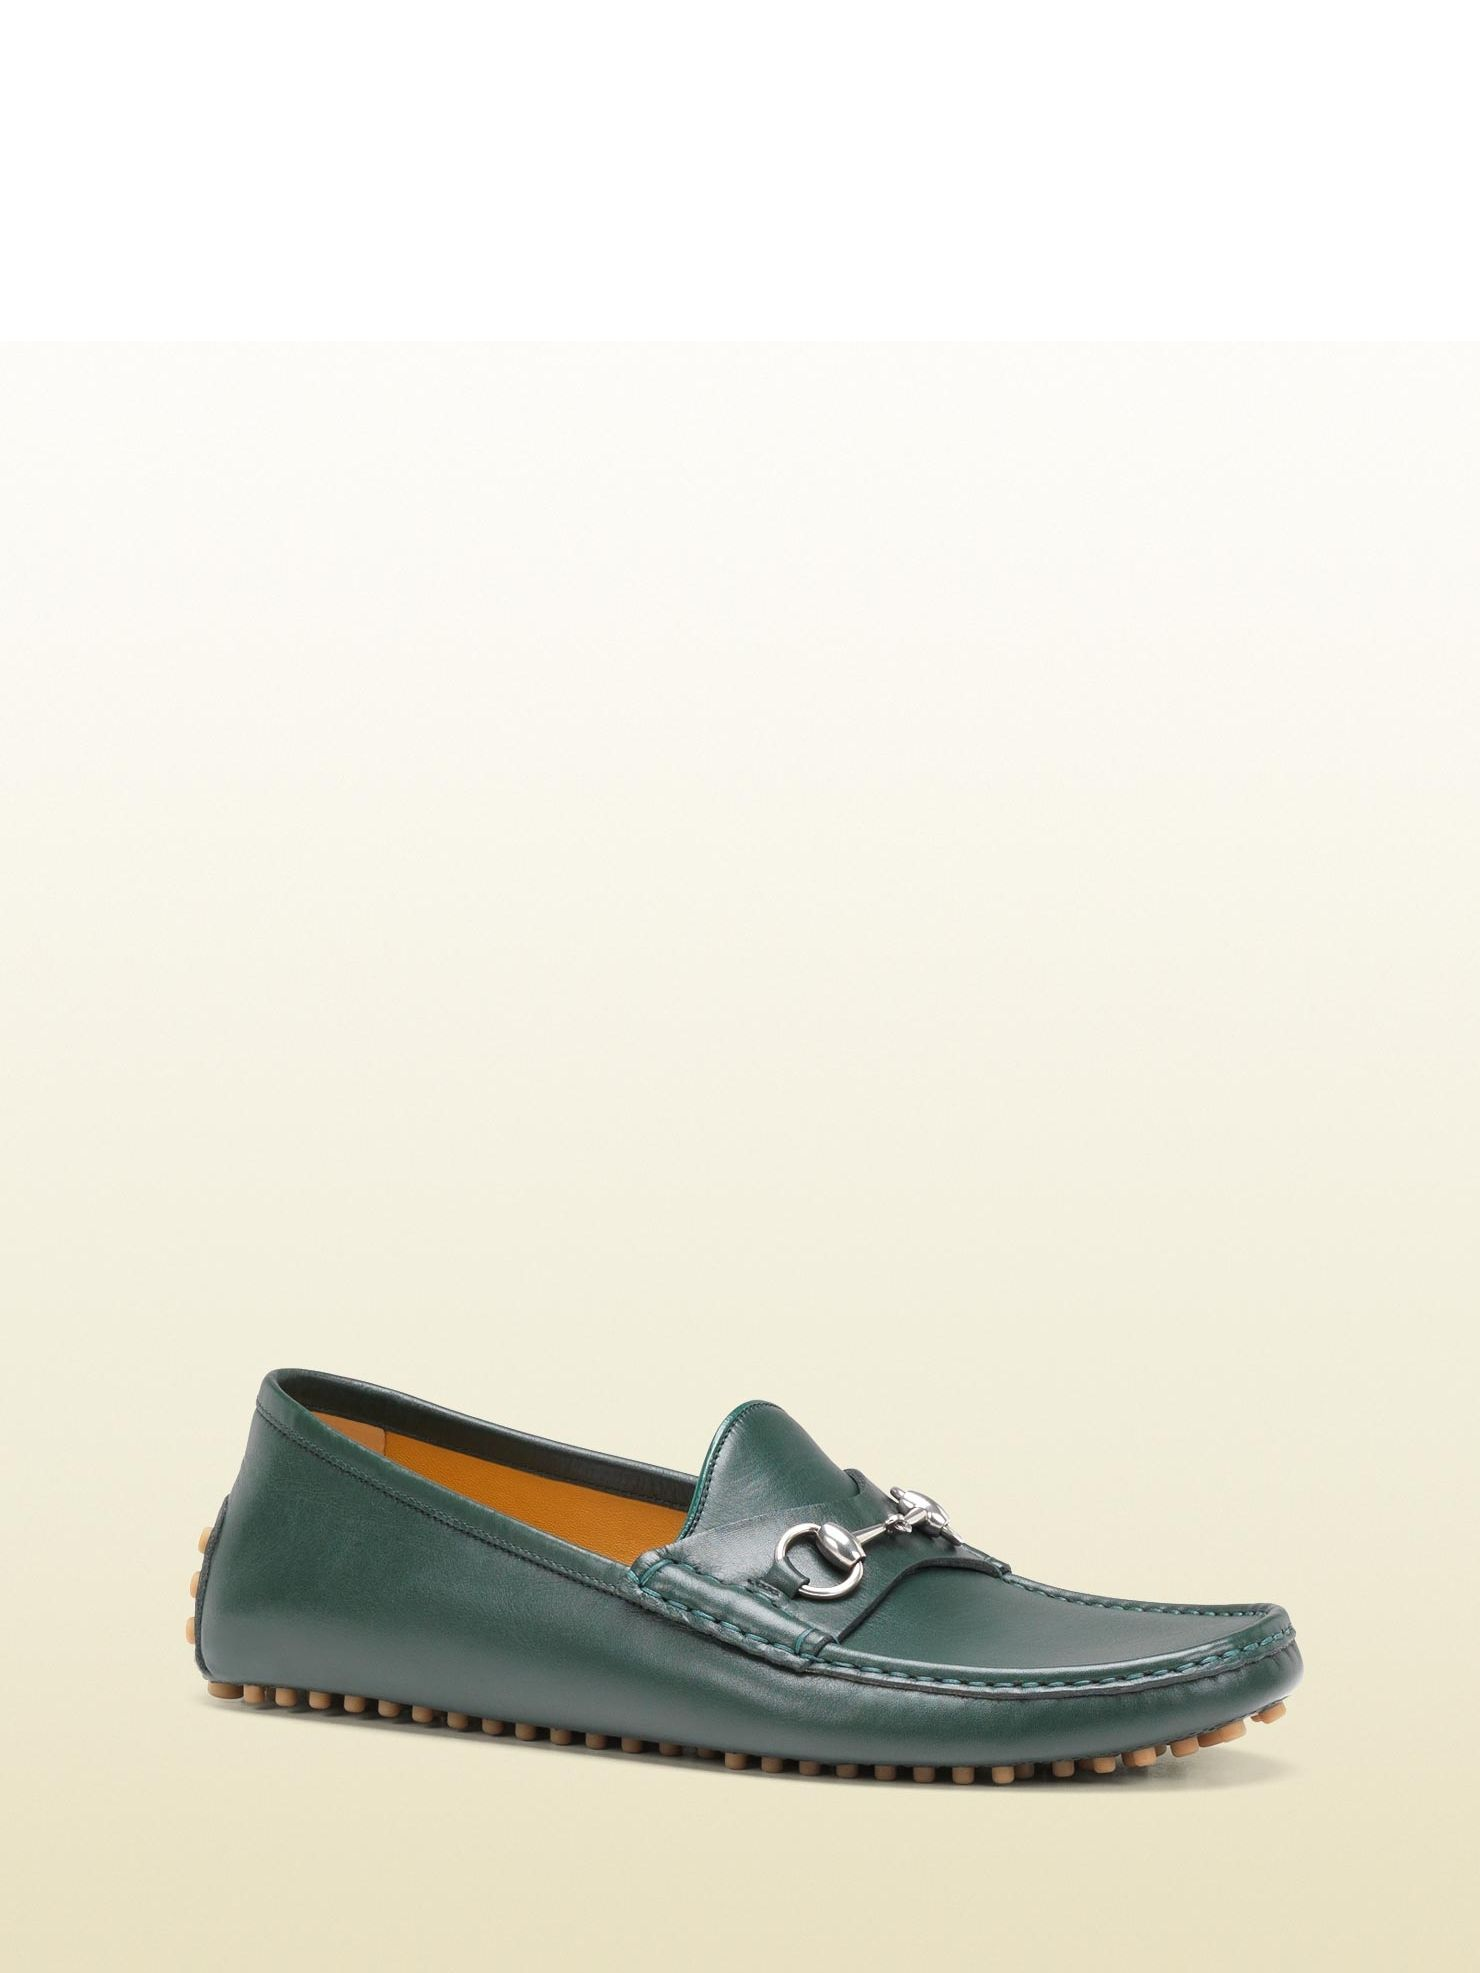 065d7f04e4c Gucci - 236936 A9L00 3020 - horsebit driver - green leather Made in Italy  silver horsebit hardware pebbled rubber sole with gucci logo detail